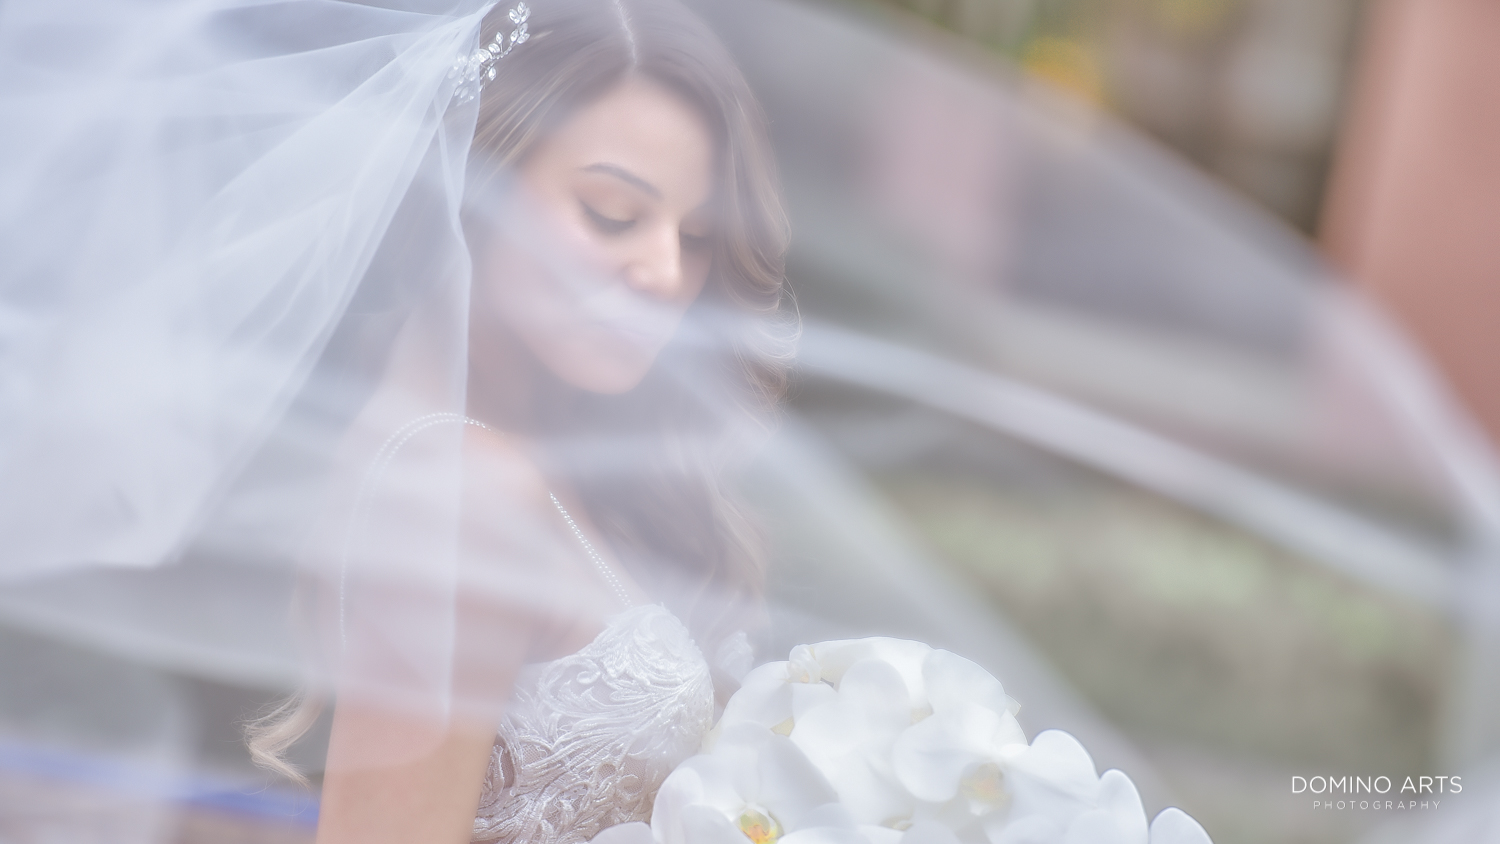 Artistic wedding picture of bride at Boca Raton Resort